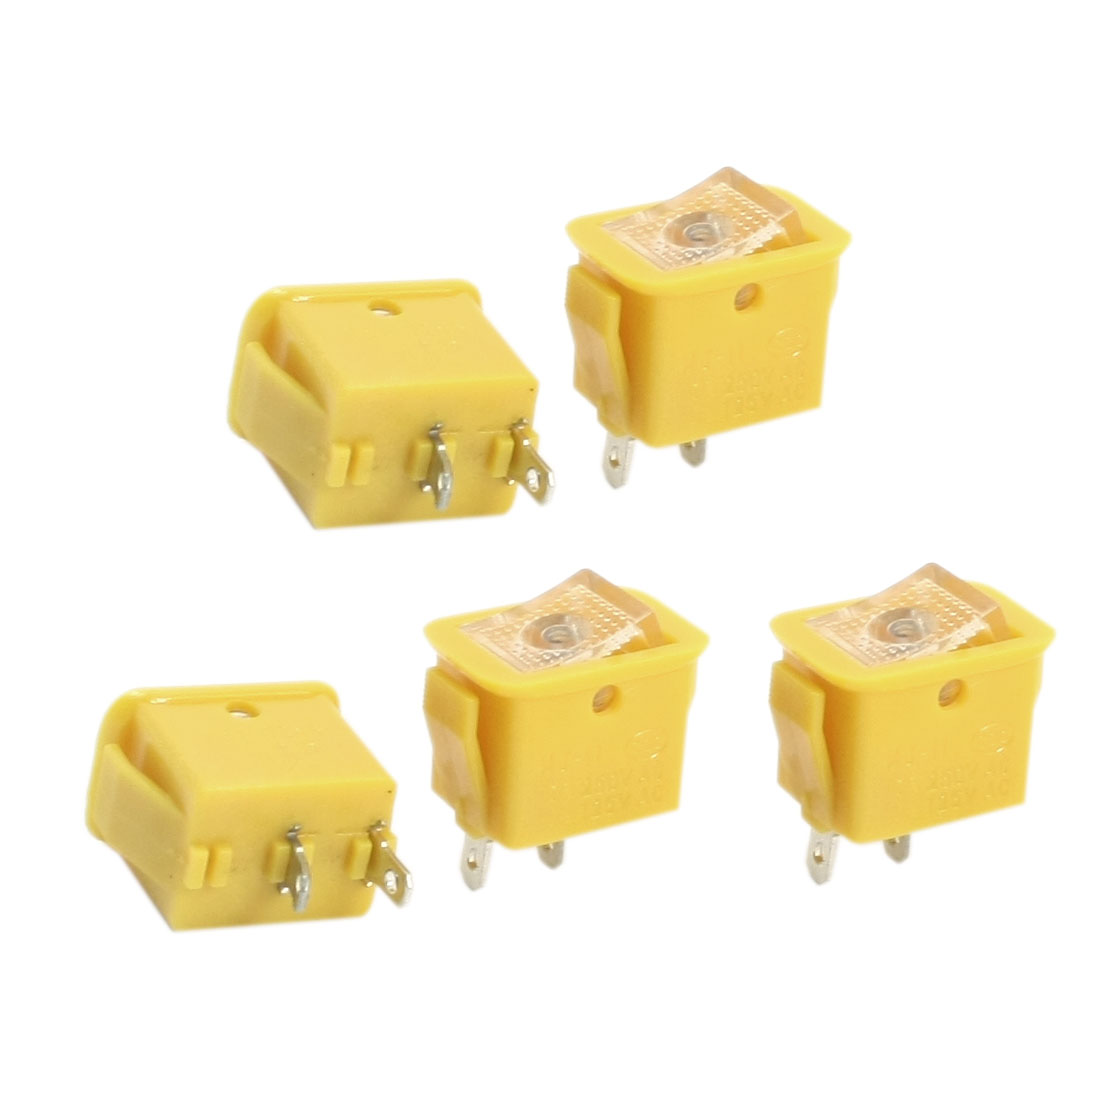 5Pcs AC250V/10A 125V/13A Latching SPST On/Off Rocker Switch Yellow